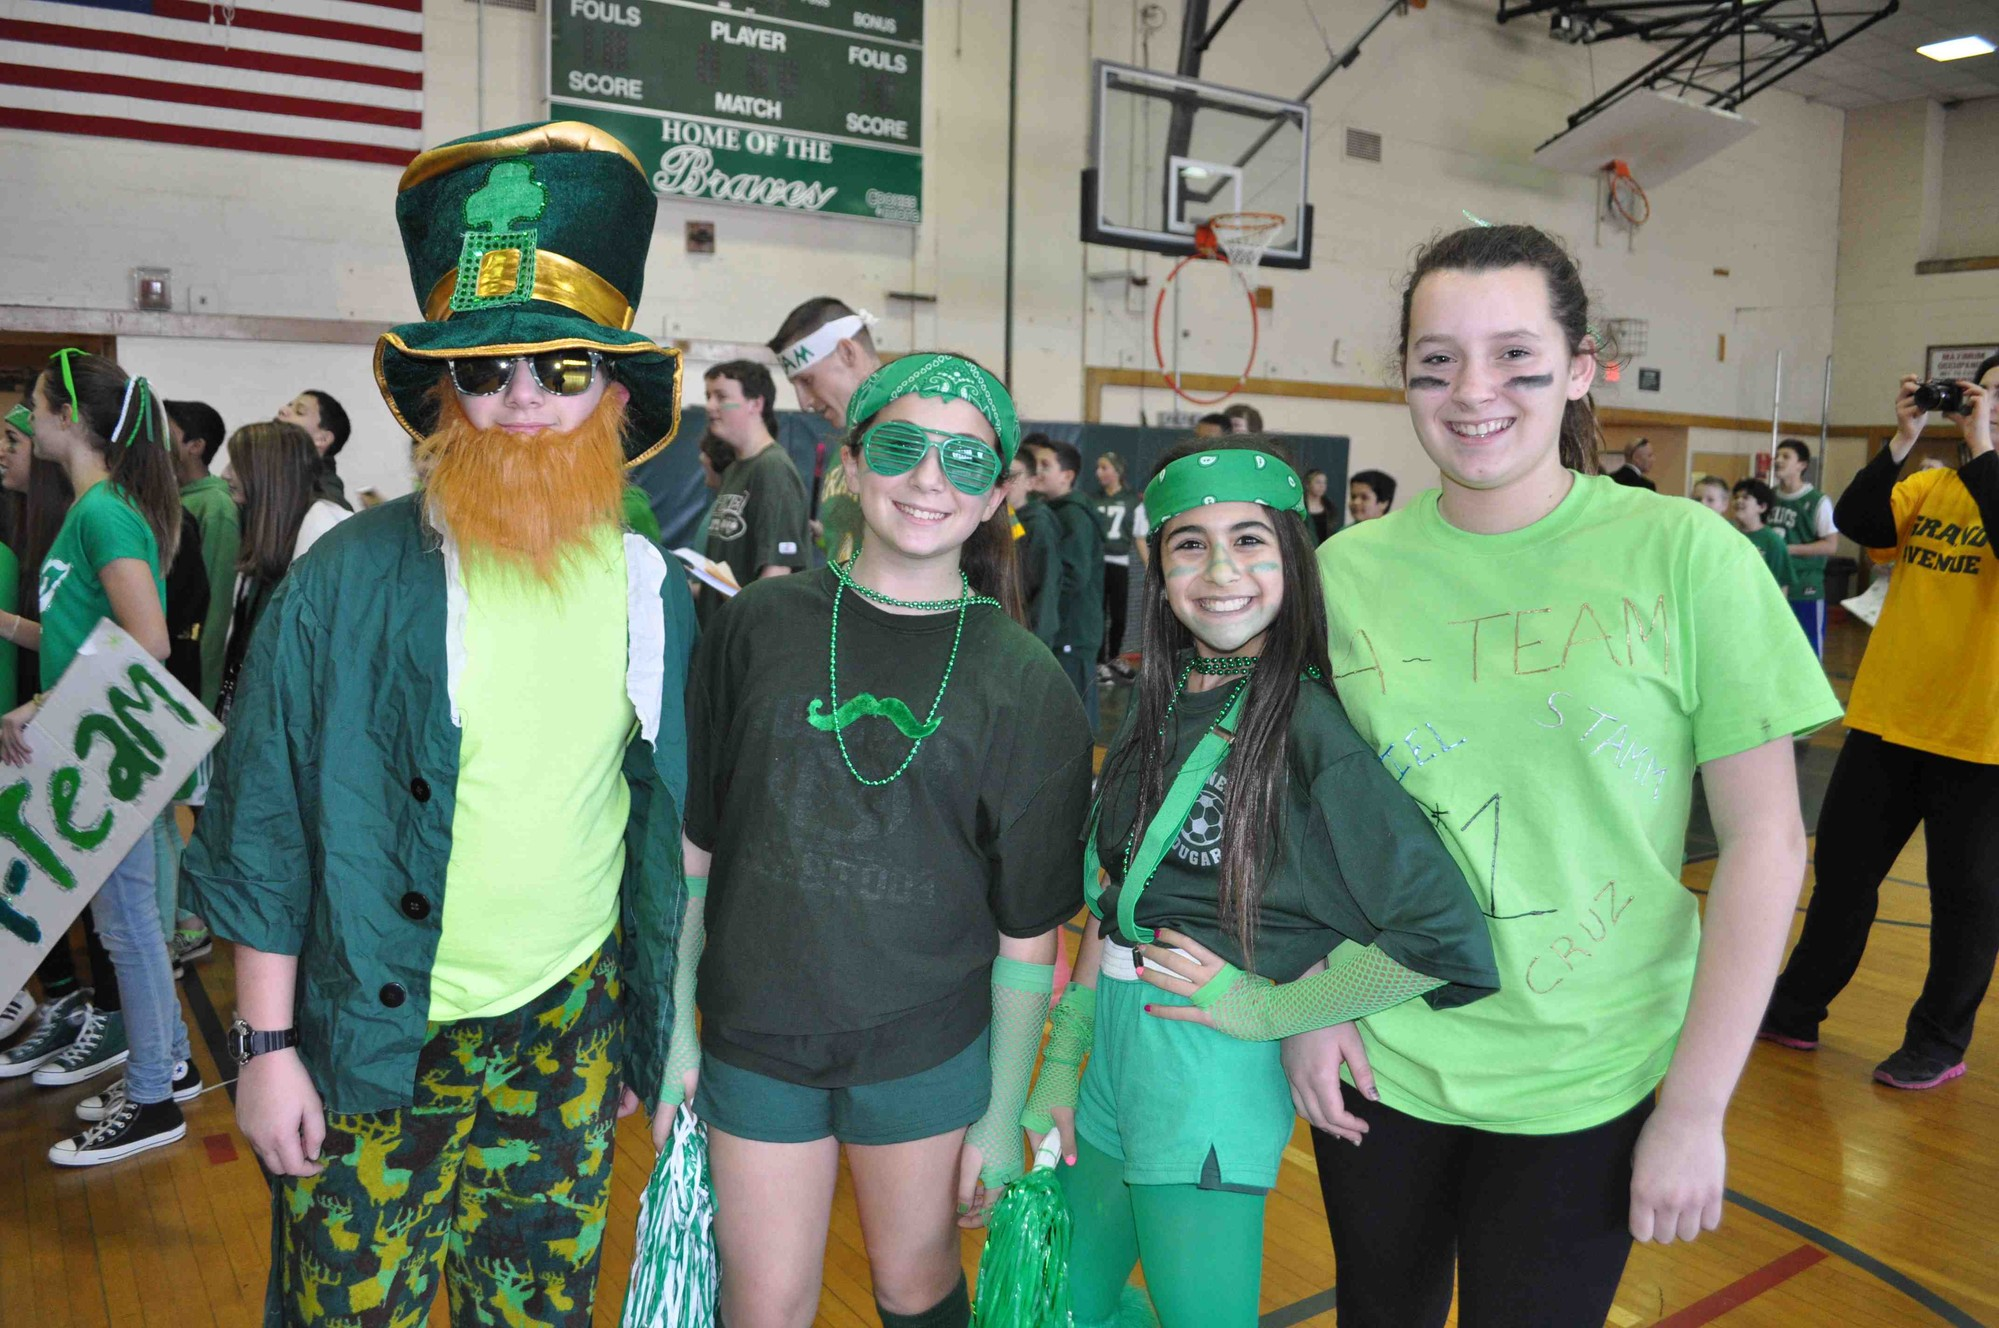 Students on the A-Team wore green for the Grand Olympics.